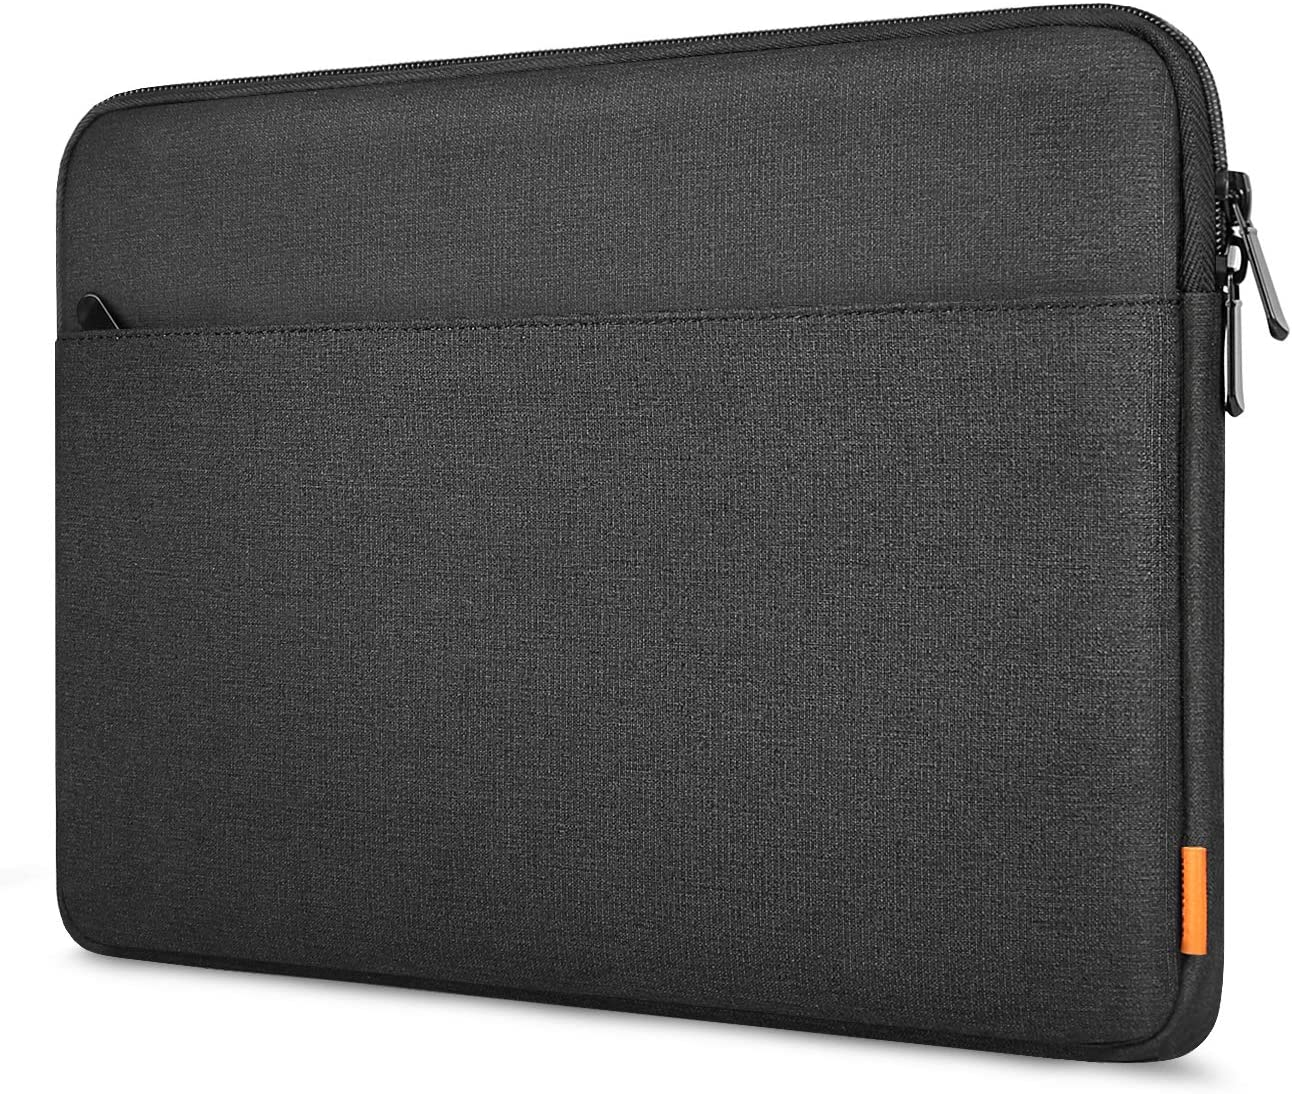 Inateck 14 Inch Laptop Sleeve Case Bag Compatible with 14'' Laptop,15'' MacBook Pro 2018/2017/2016, Notebooks, Chromebooks, Black